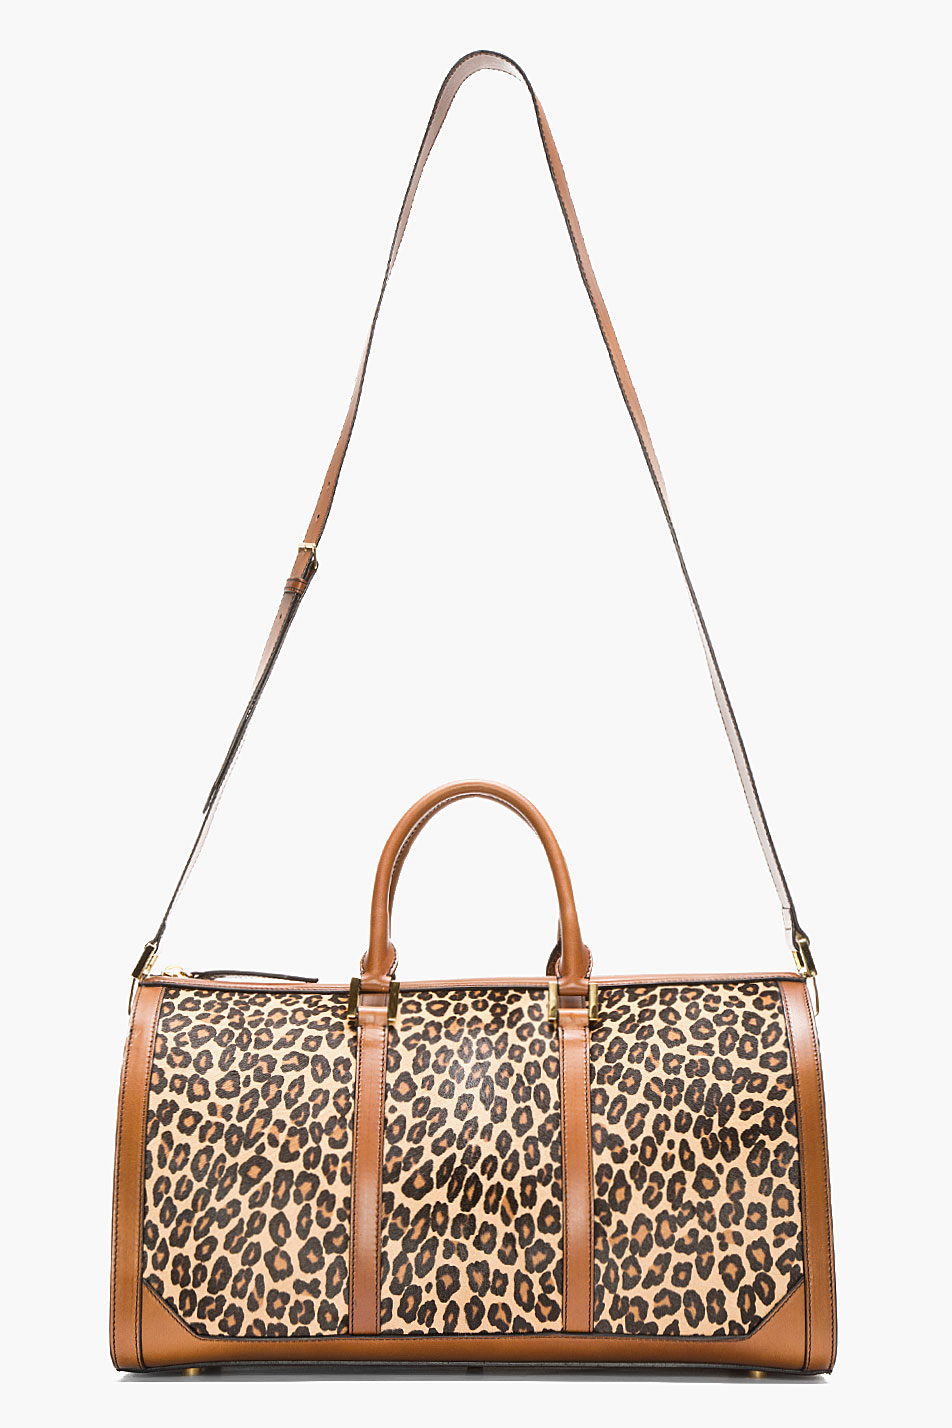 380012a6568b Lyst - Burberry Prorsum Tan Leopard Print Calf hair House Check Duffle Bag  in Brown for Men